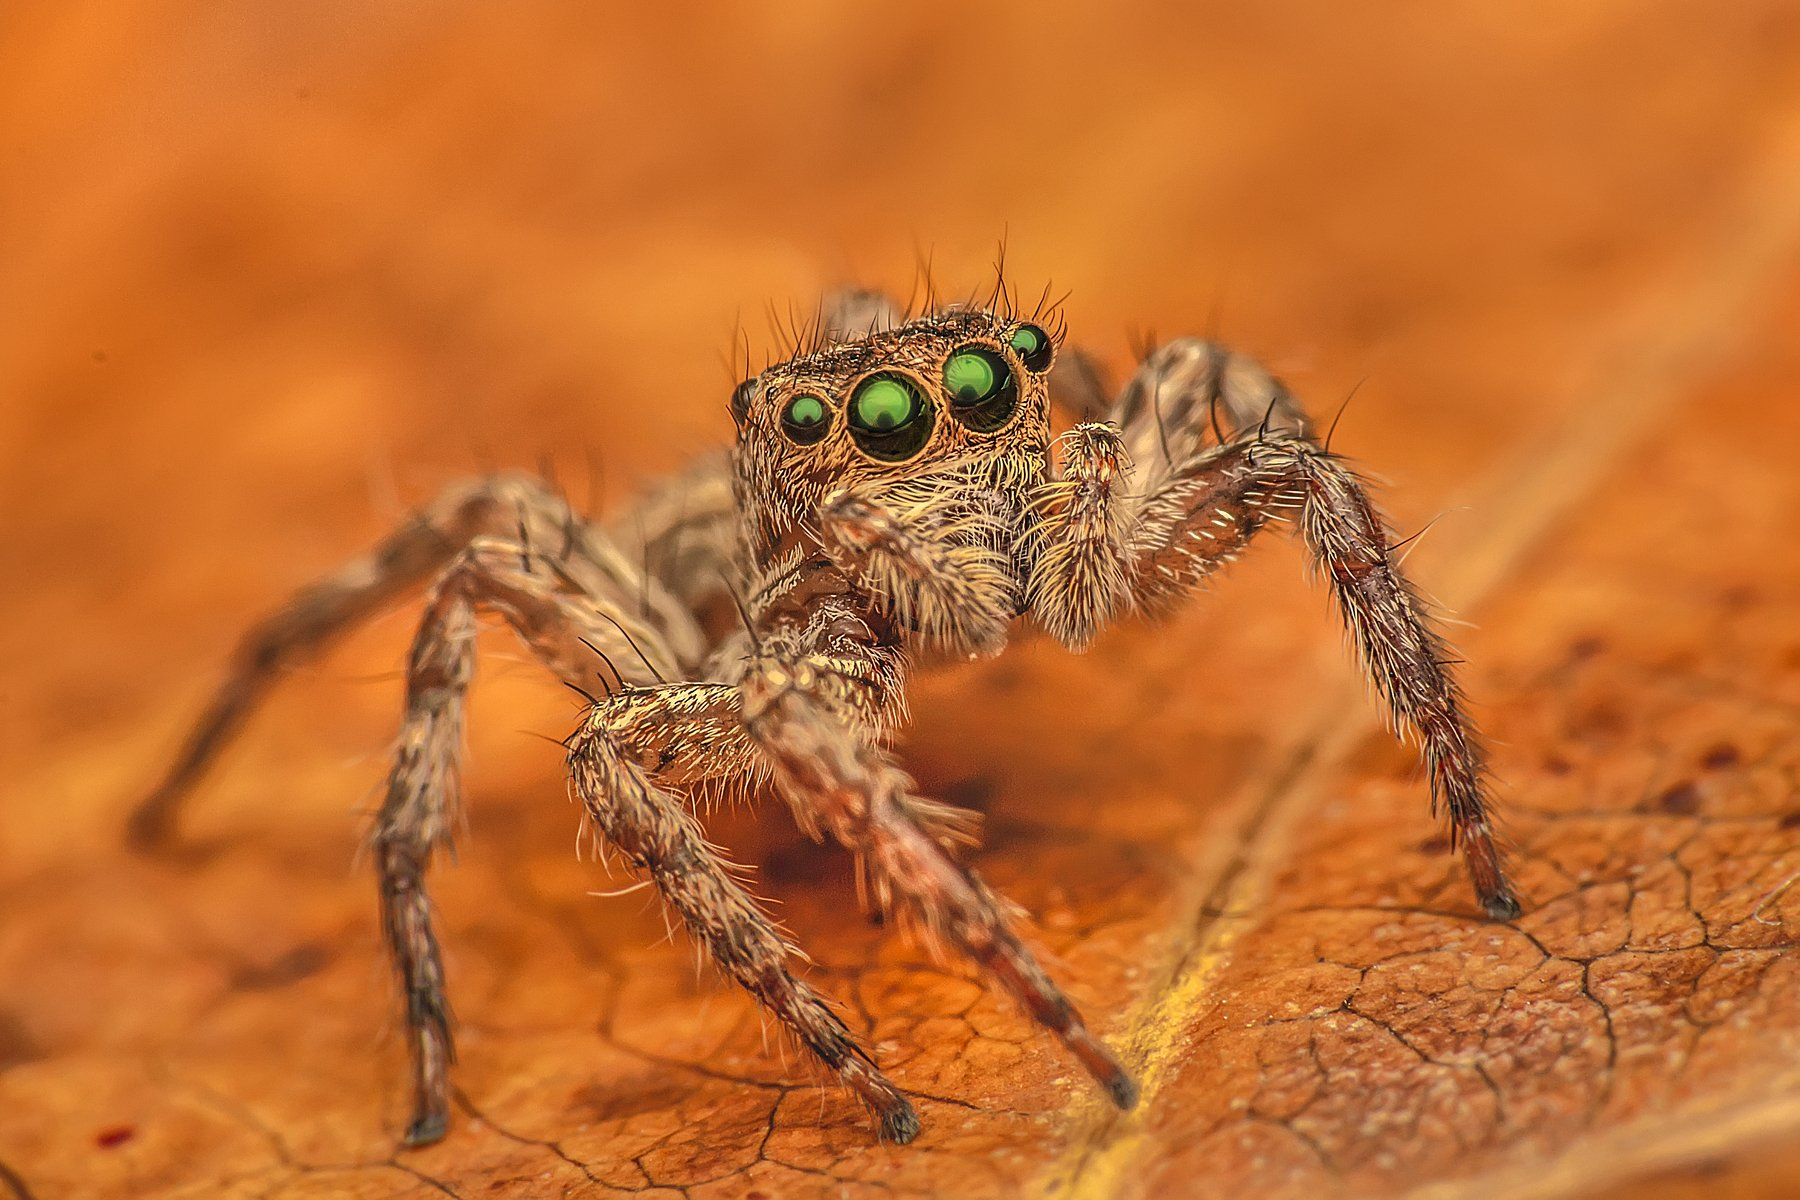 spider, insect animal, danger, dangerus, beatiful, beauty, tropical, eyes, small, macro, close up, jumpon leaf, park, outdoor, forest prey, wild, wildlife, white, red, nature, natural, garden, ChonTin NeCoTi